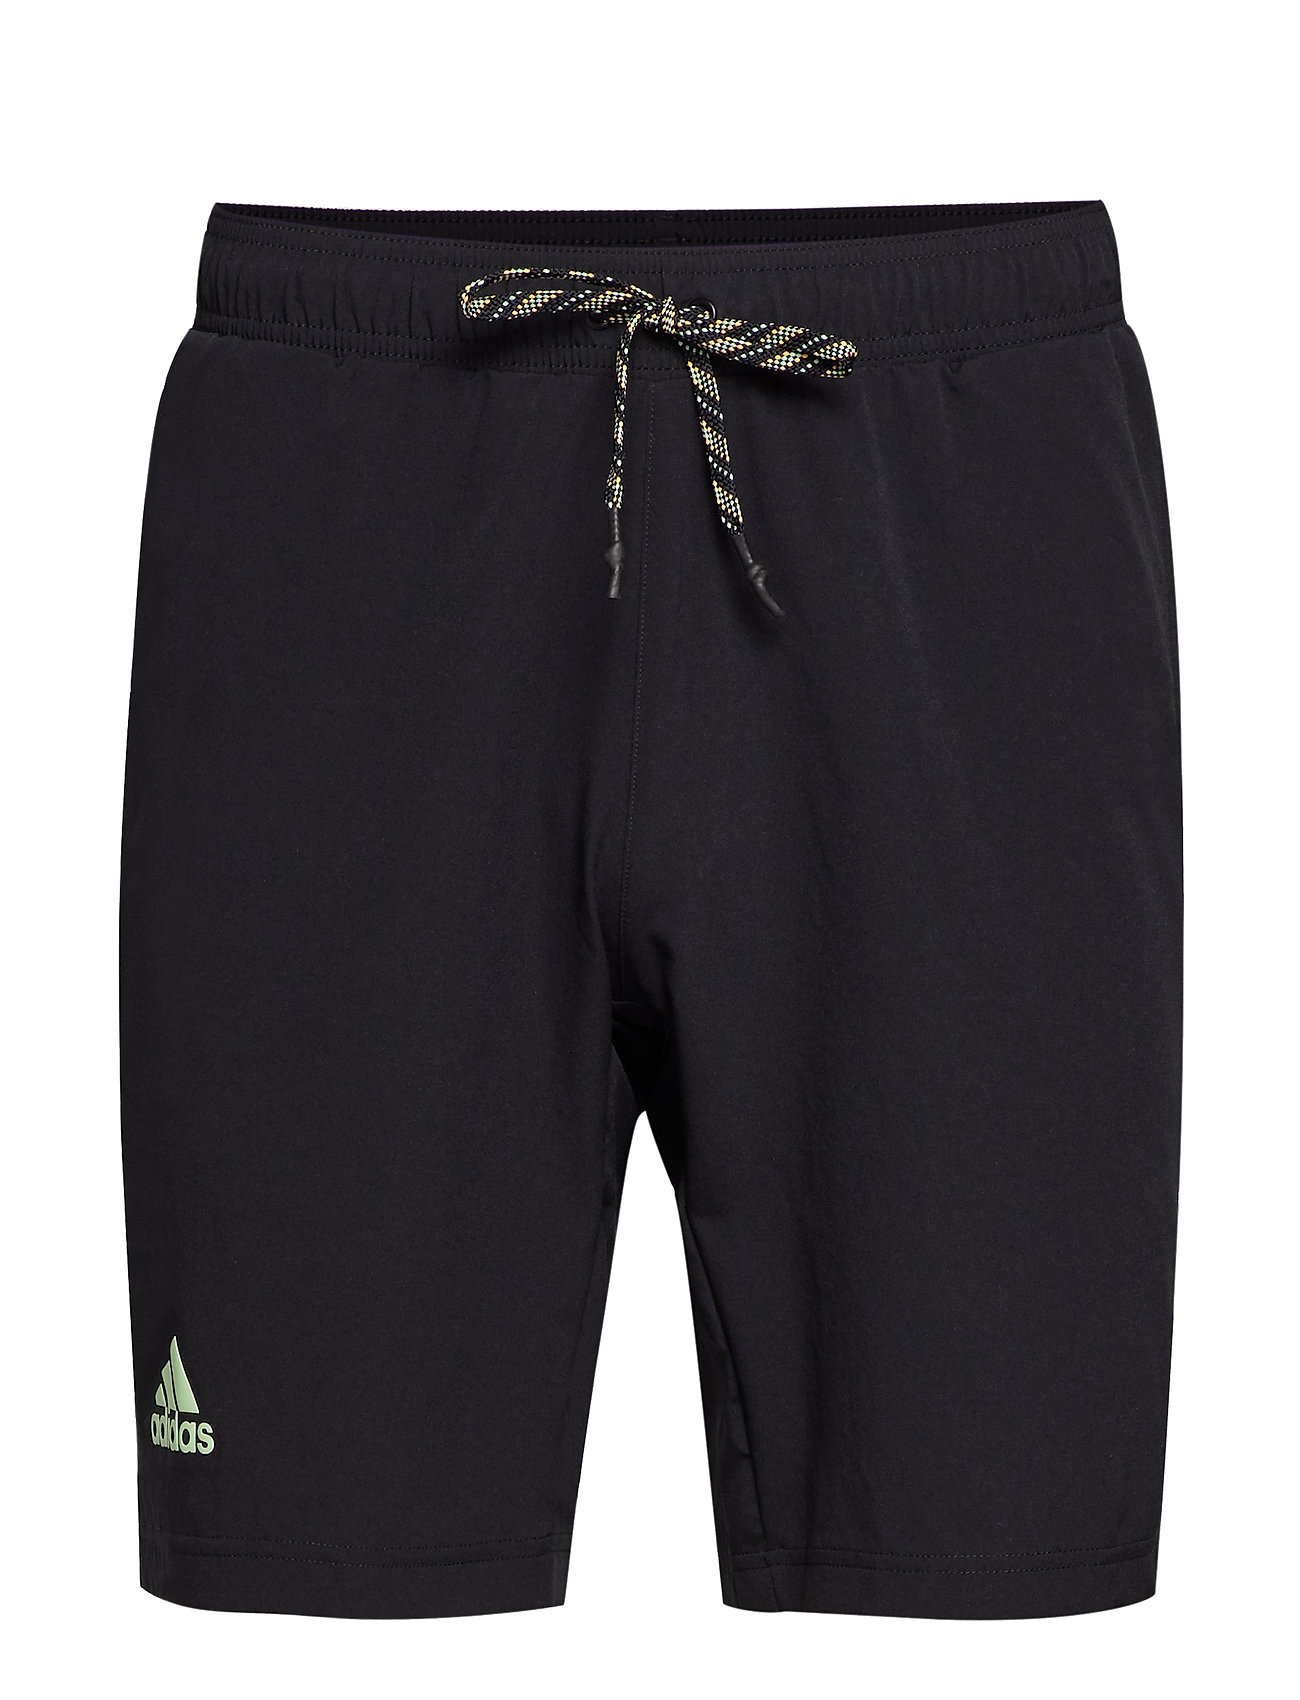 adidas Tennis NY SOLID SHORT - BLACK